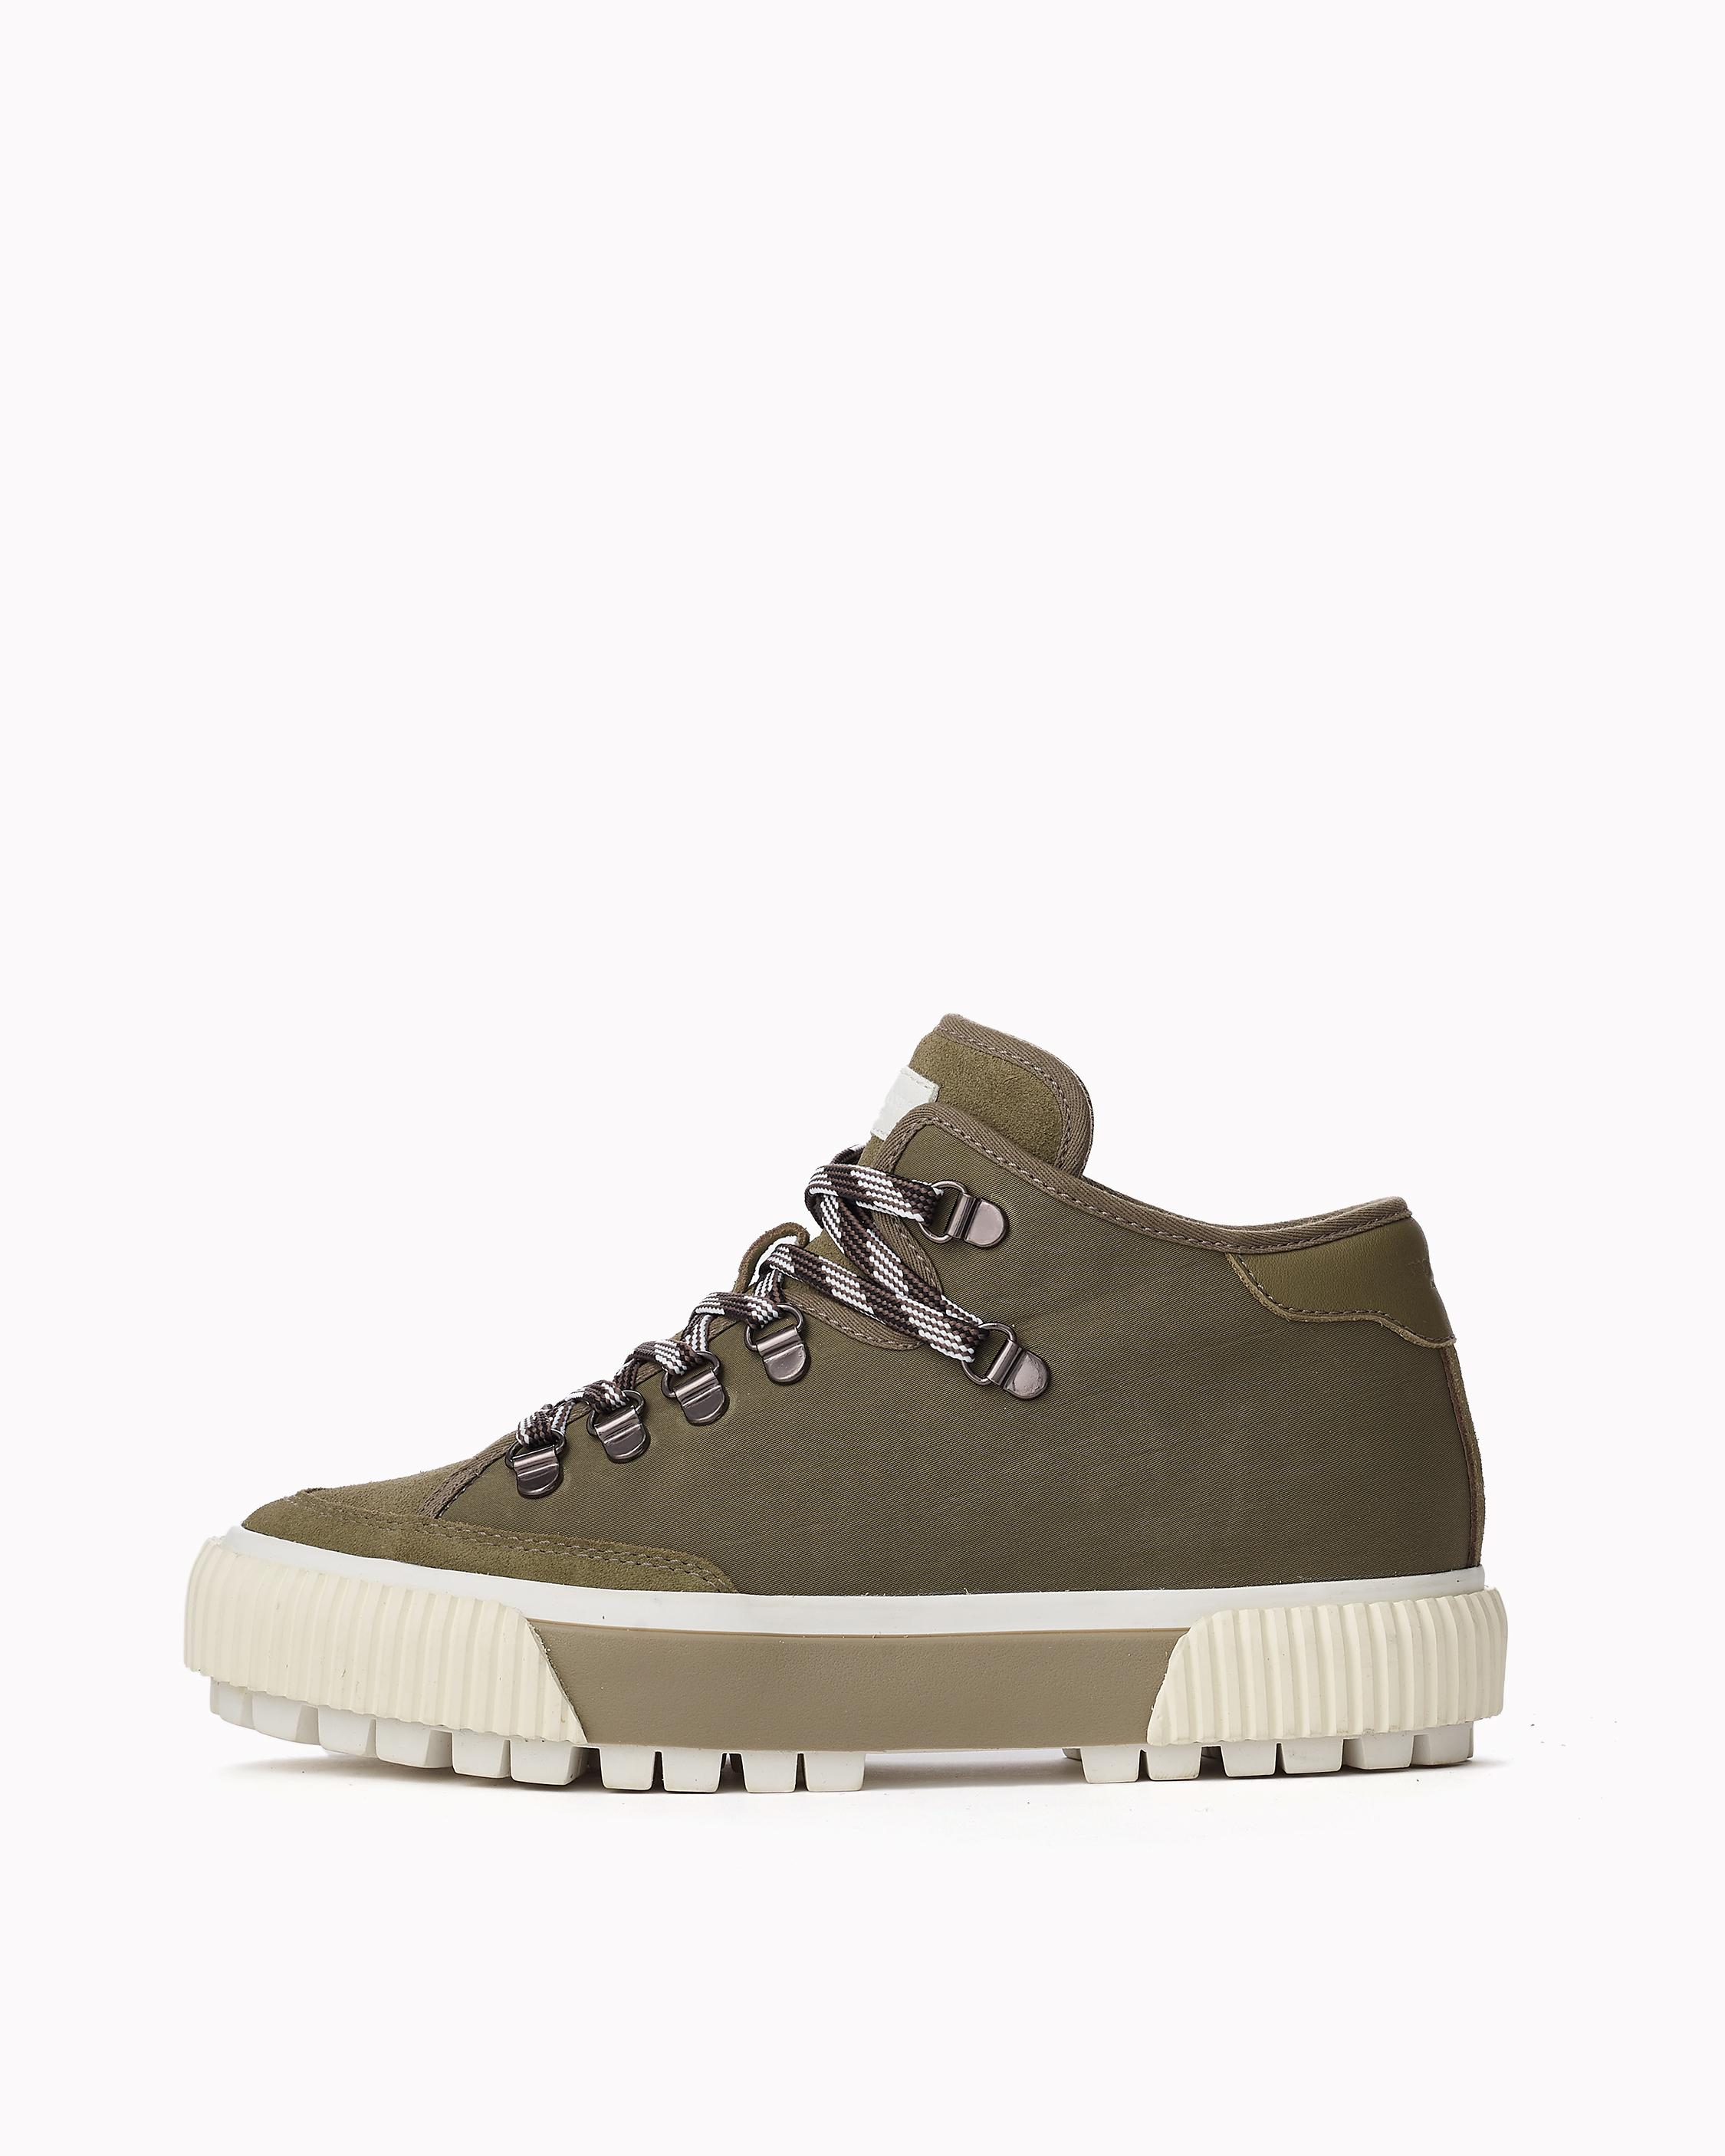 RB ARMY HIKER LOW